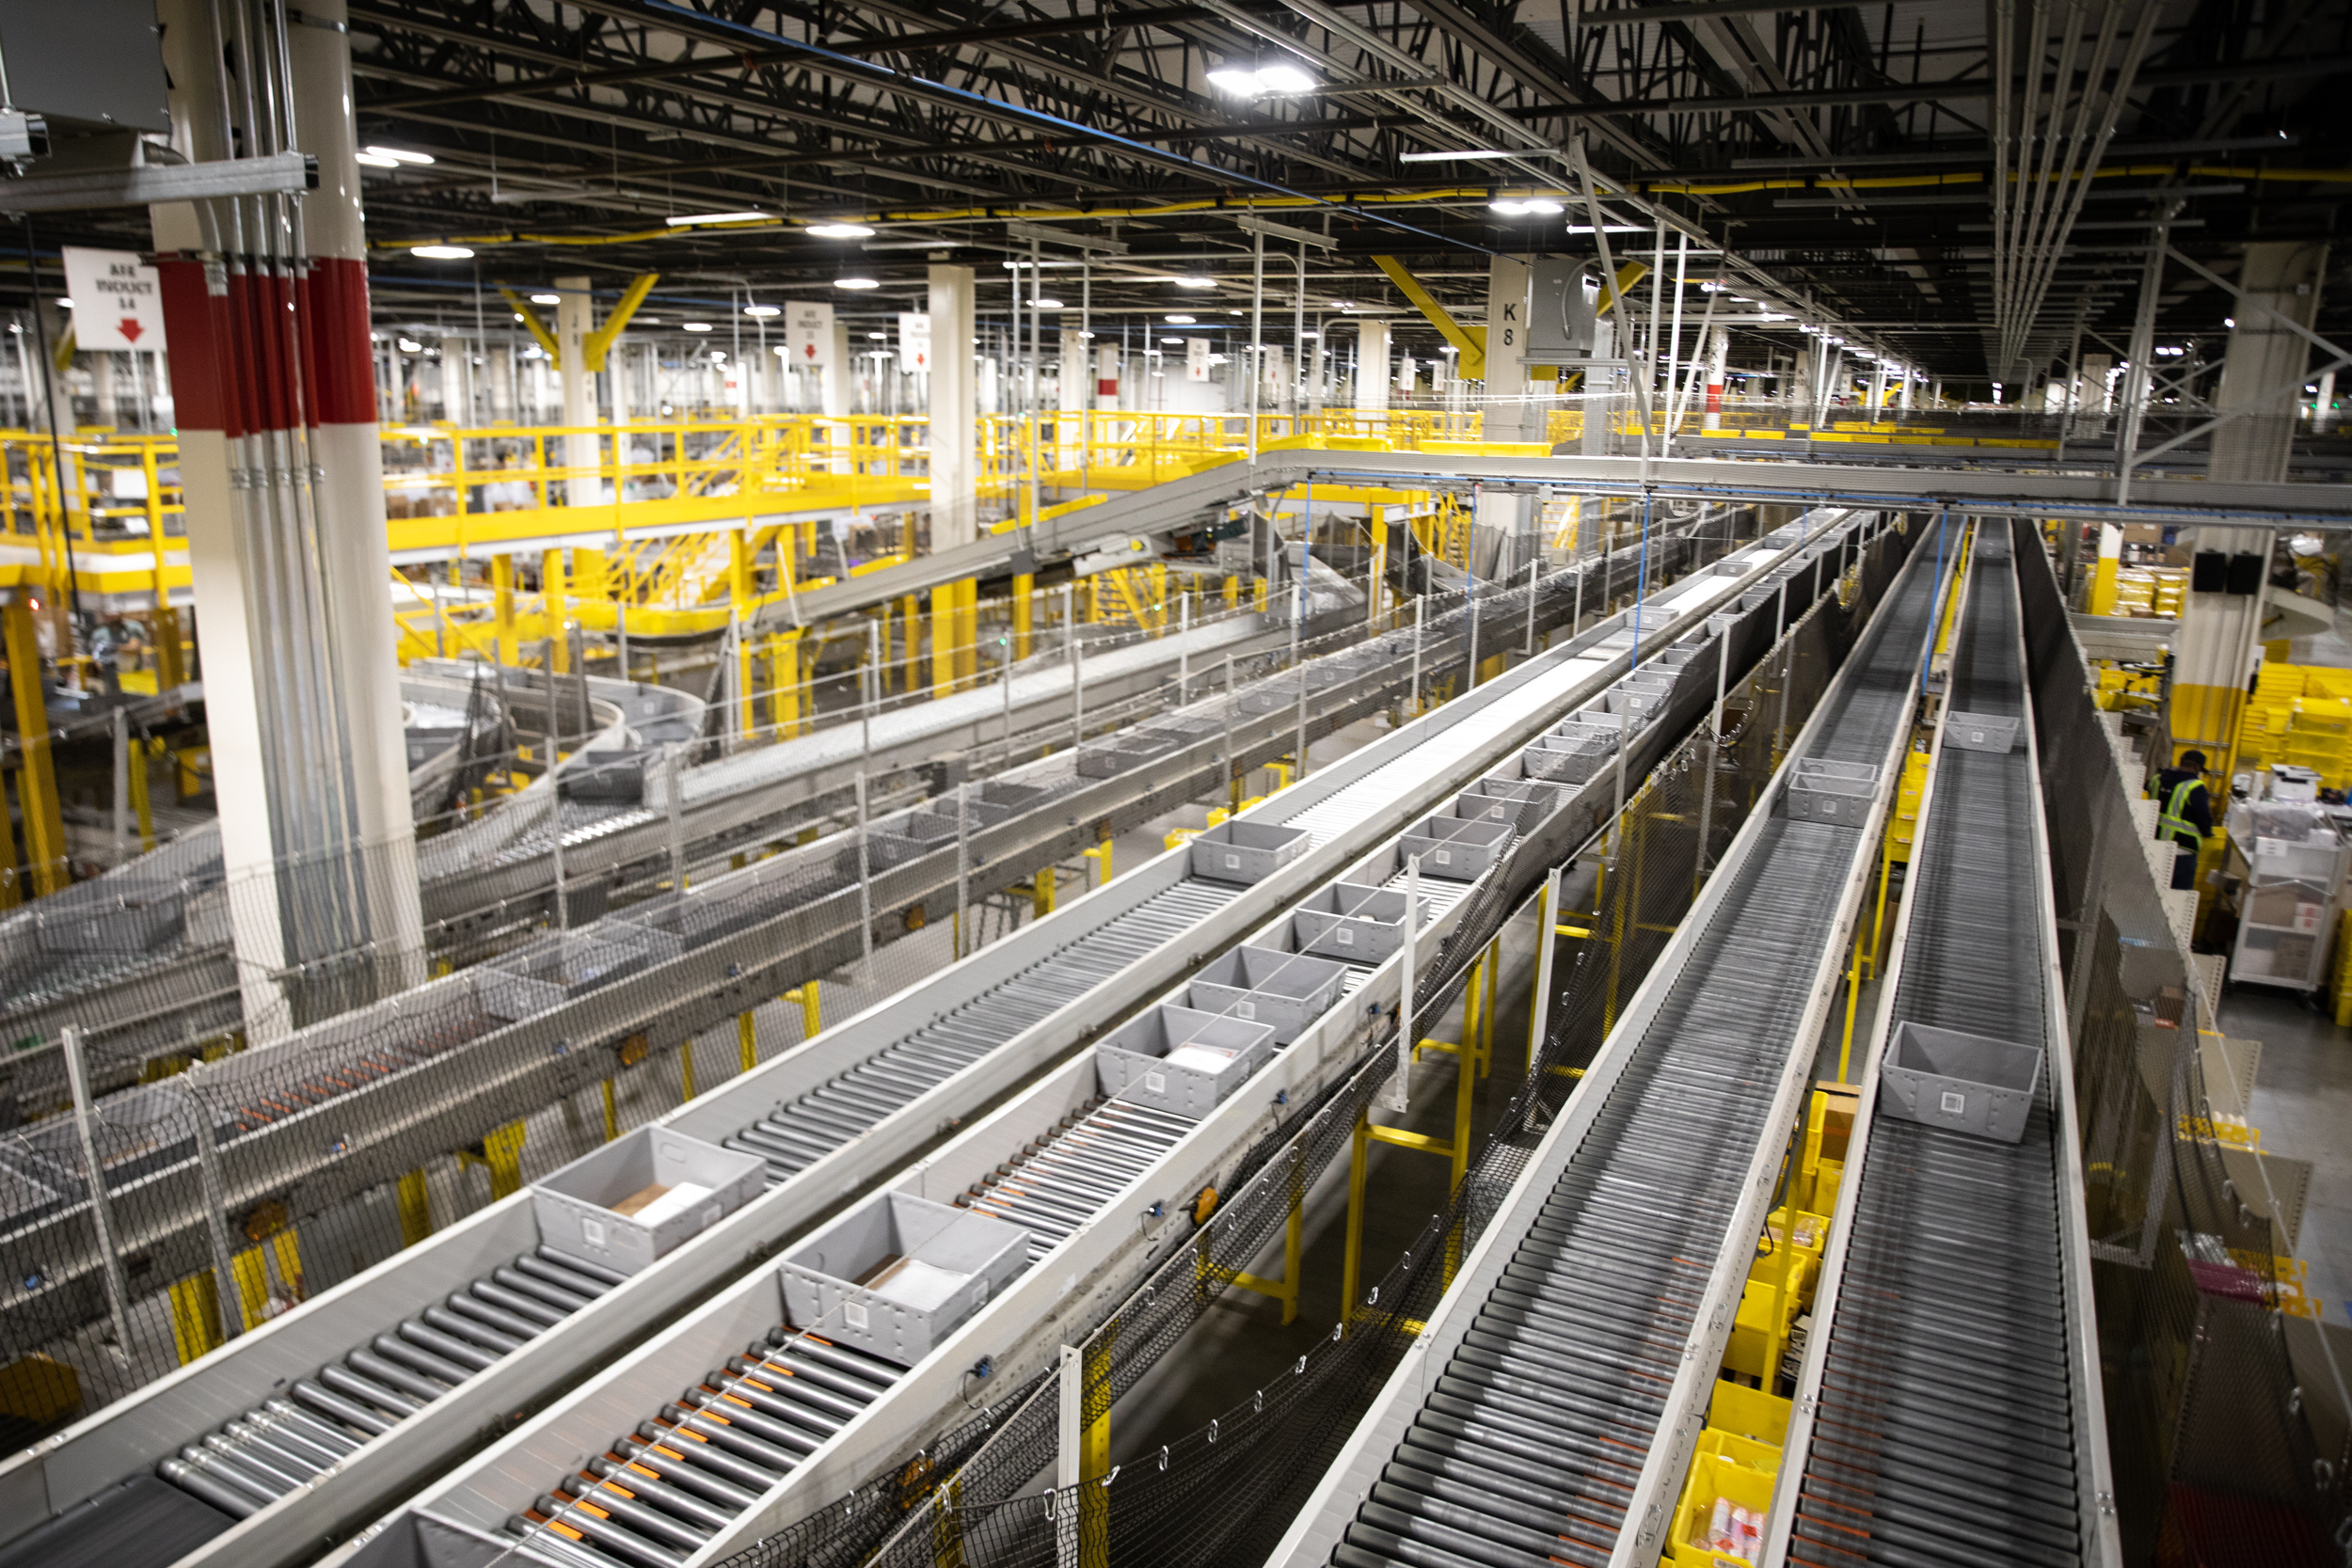 Conveyor belts are pictured an Amazon fulfillment center